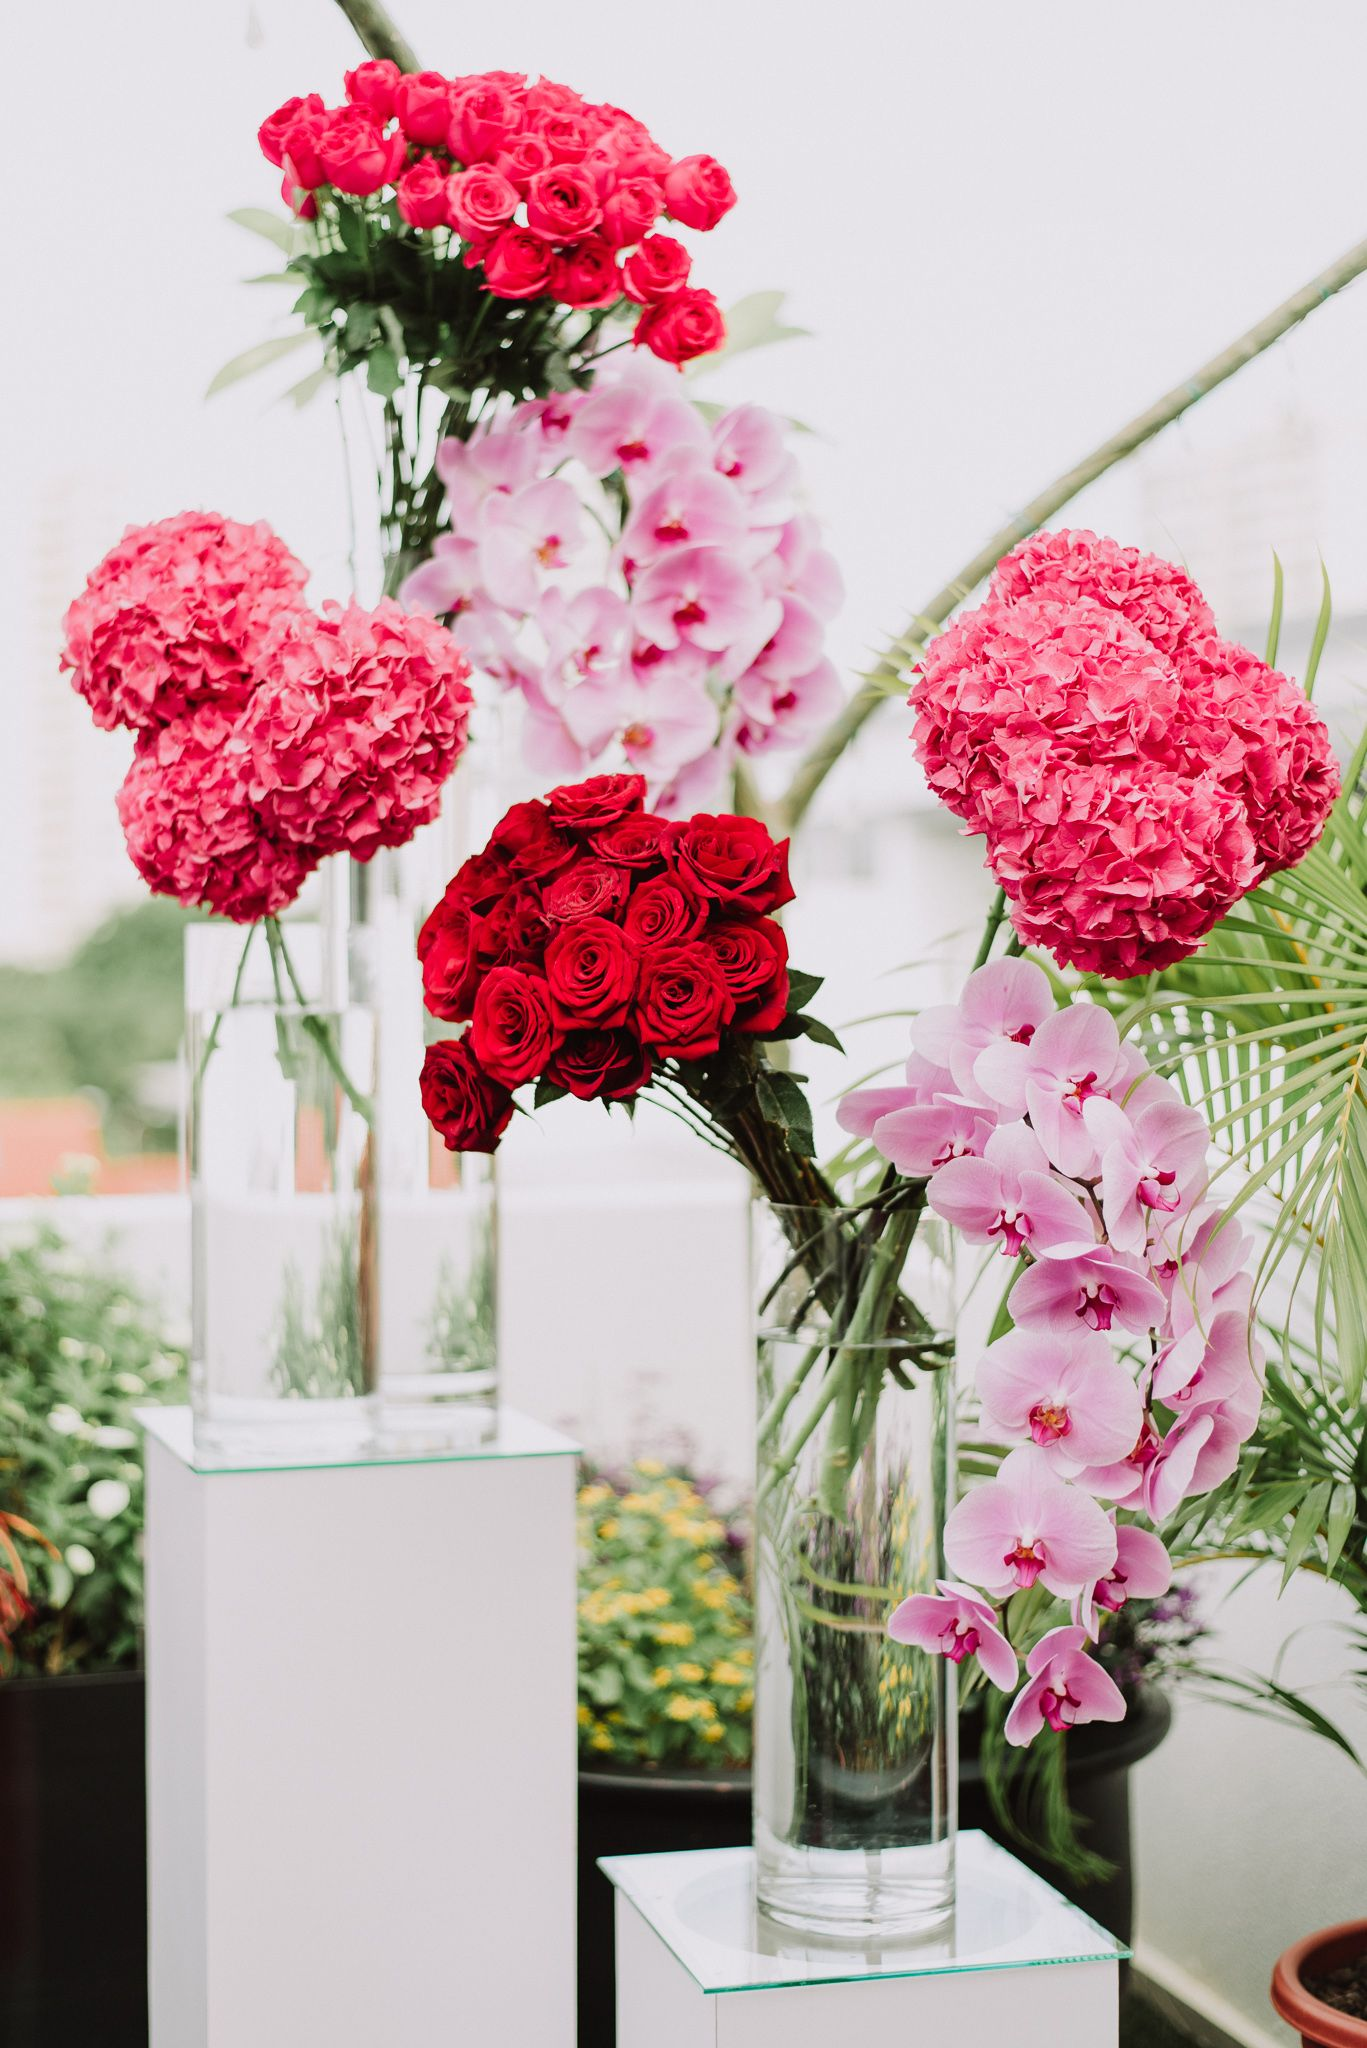 Wedding decor in shades of red pink and purple flower wedding decor in shades of red pink and purple flower arrangements in tall clear vases wedding planning chere weddings izmirmasajfo